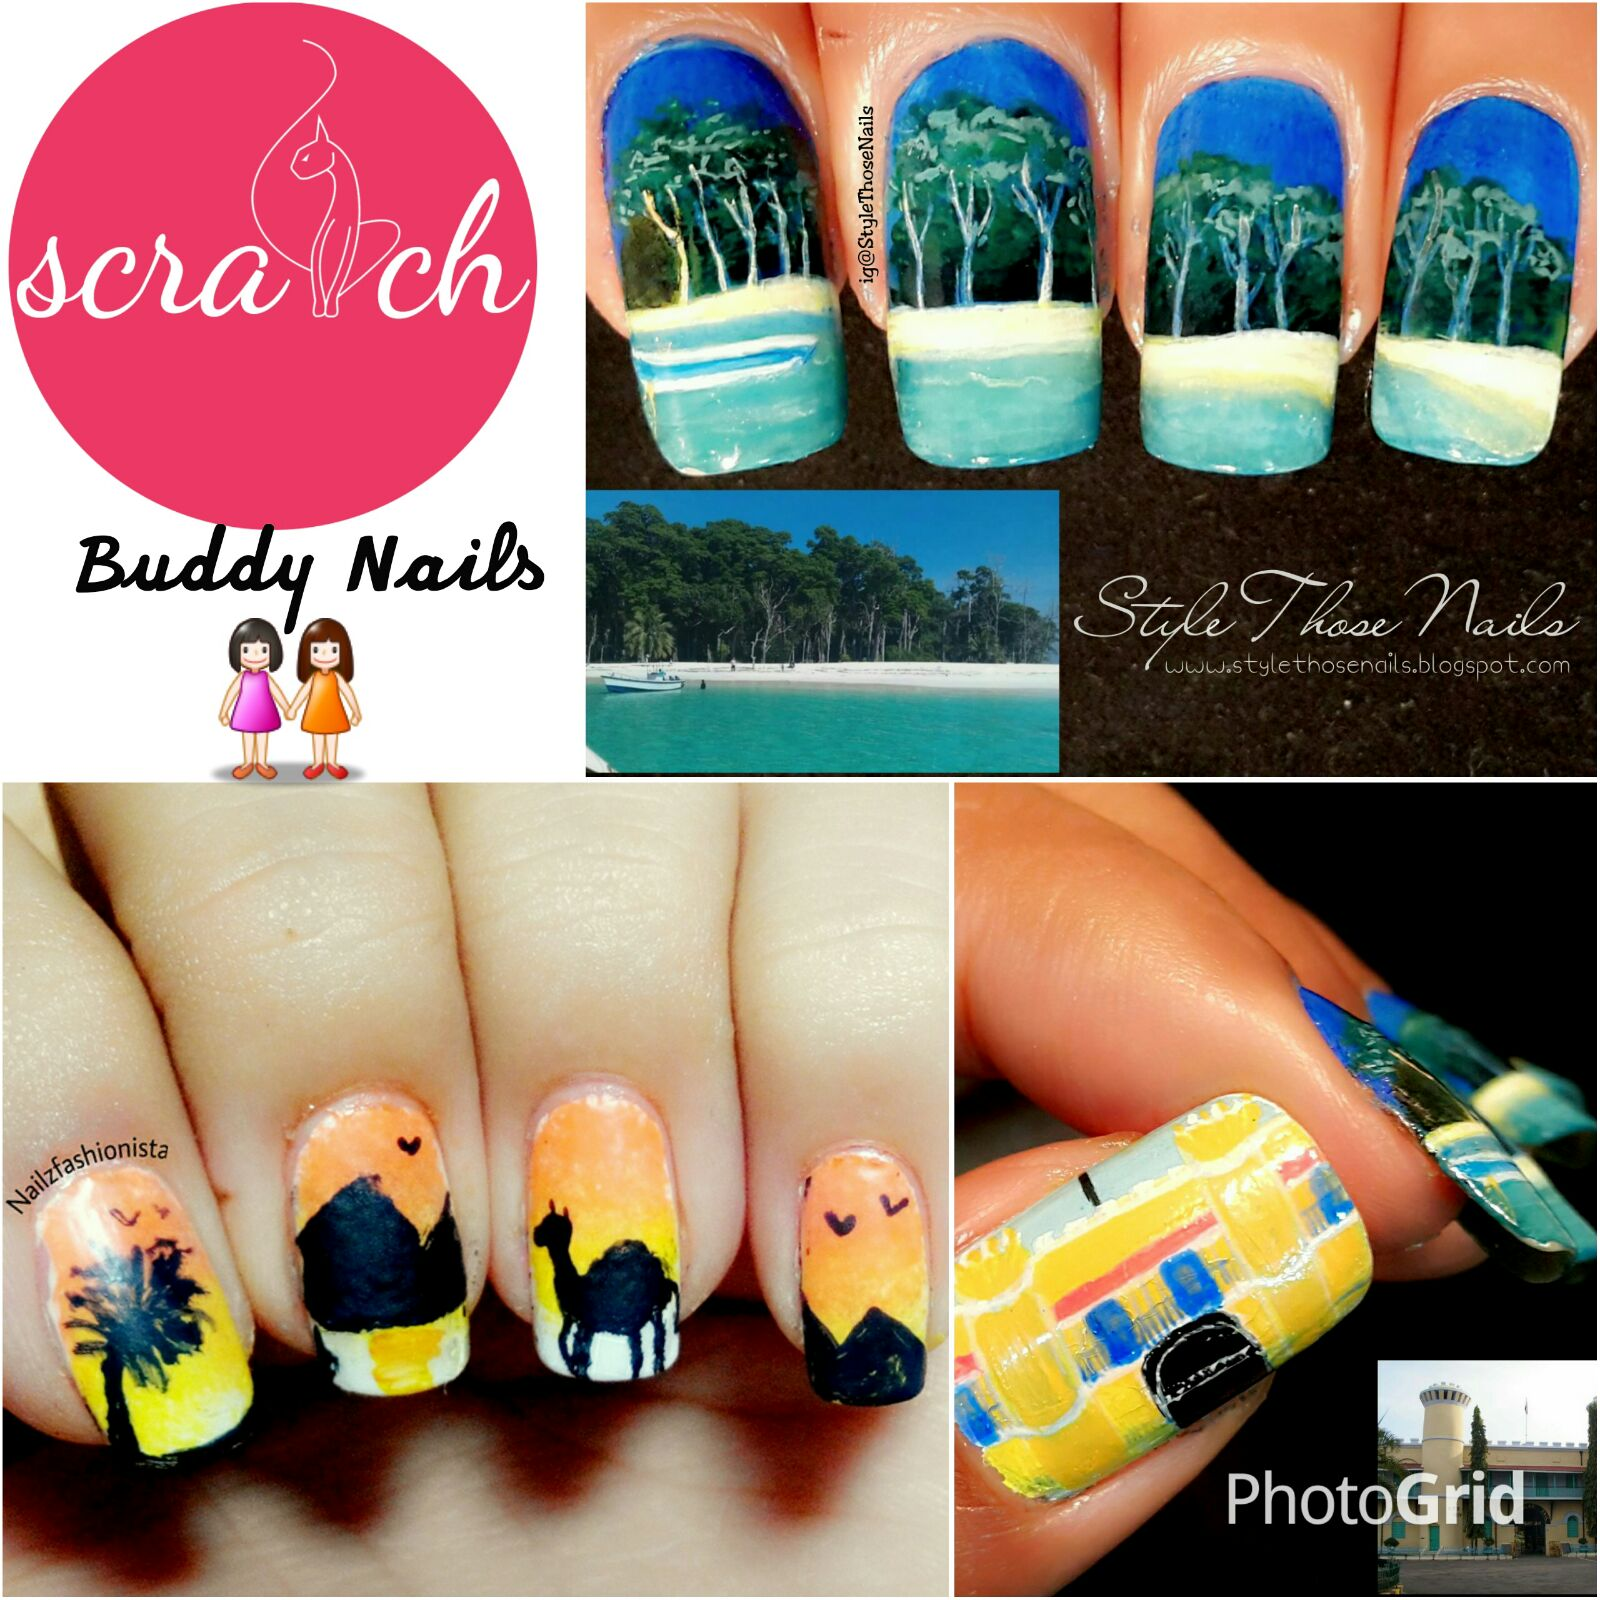 Style Those Nails: beach nails